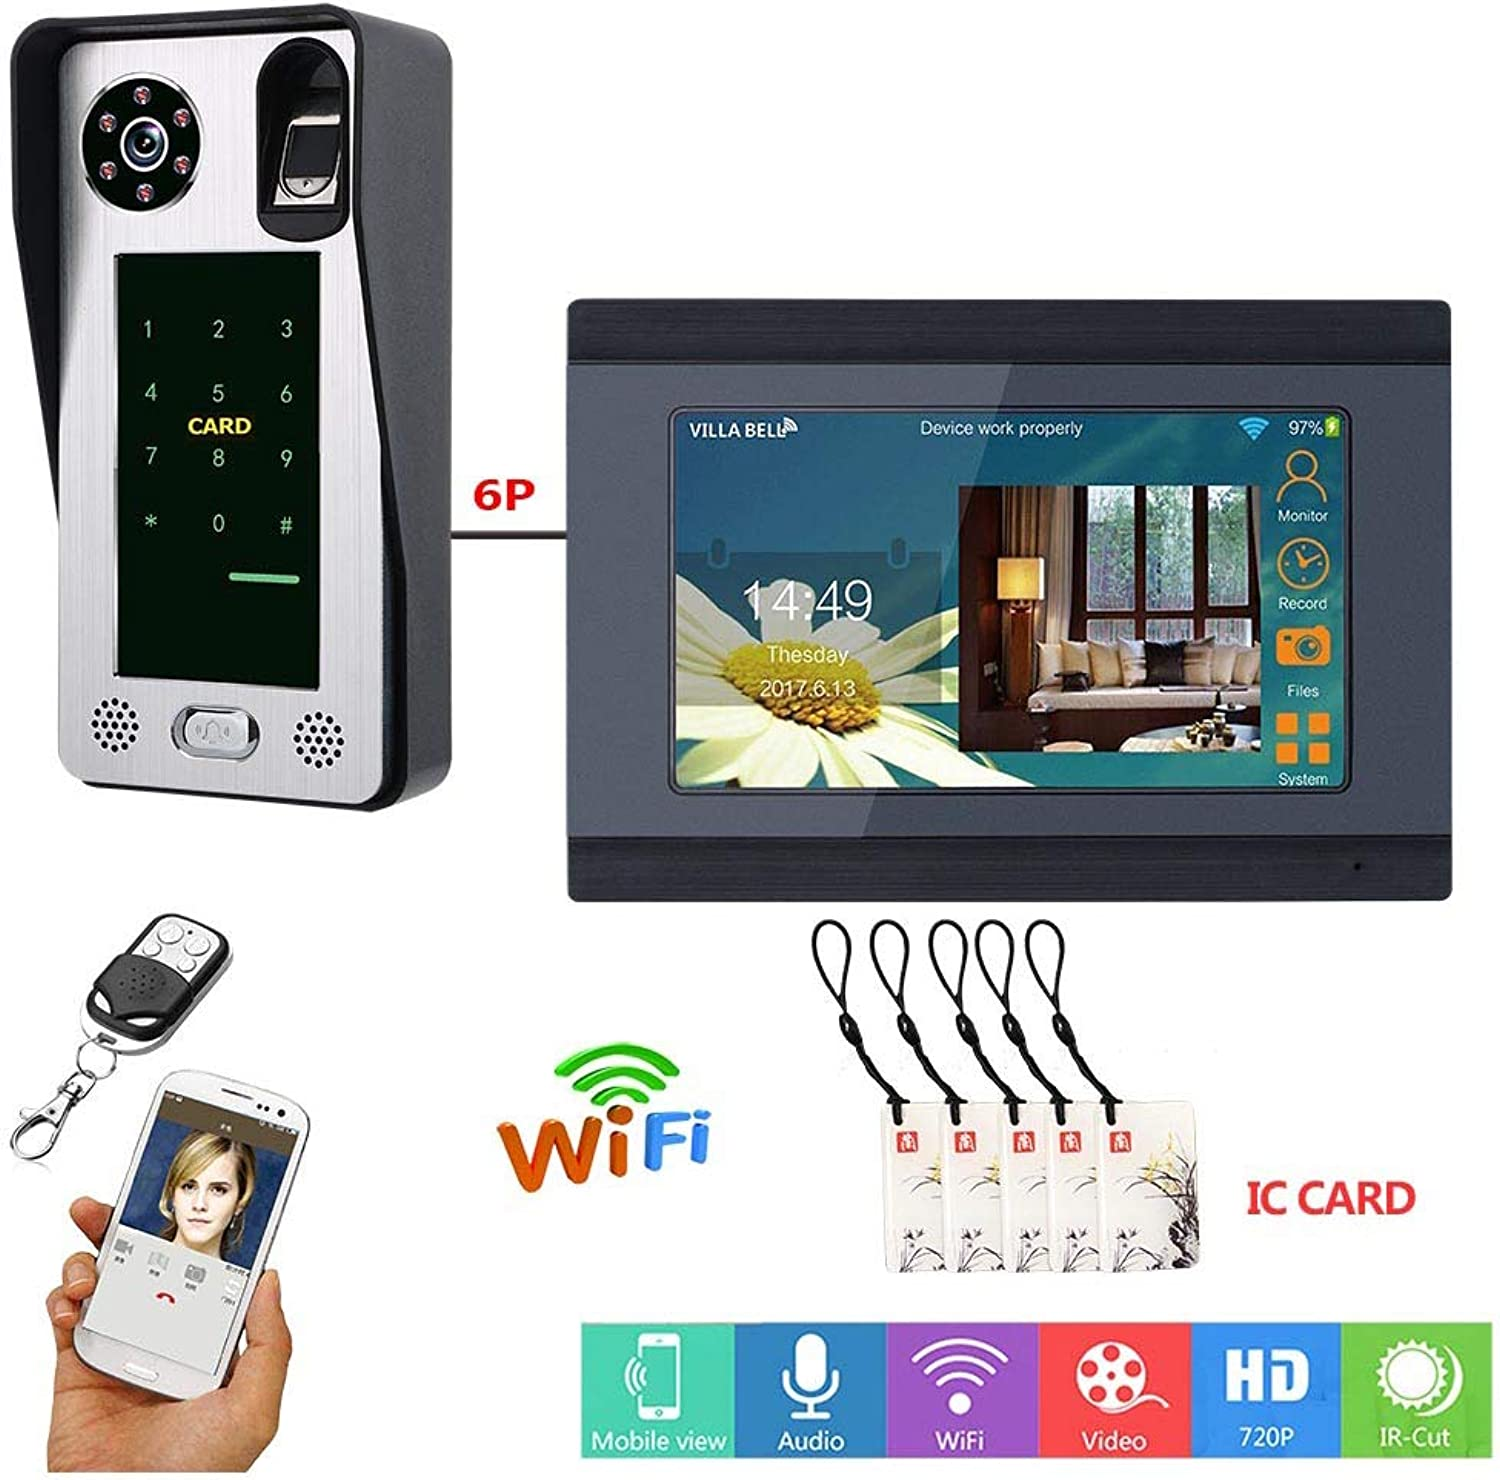 7 inch fingerprint IC card video phone doorbell, waterproof WIFI intercom system with access control system, support remote APP unlock recording snapshot